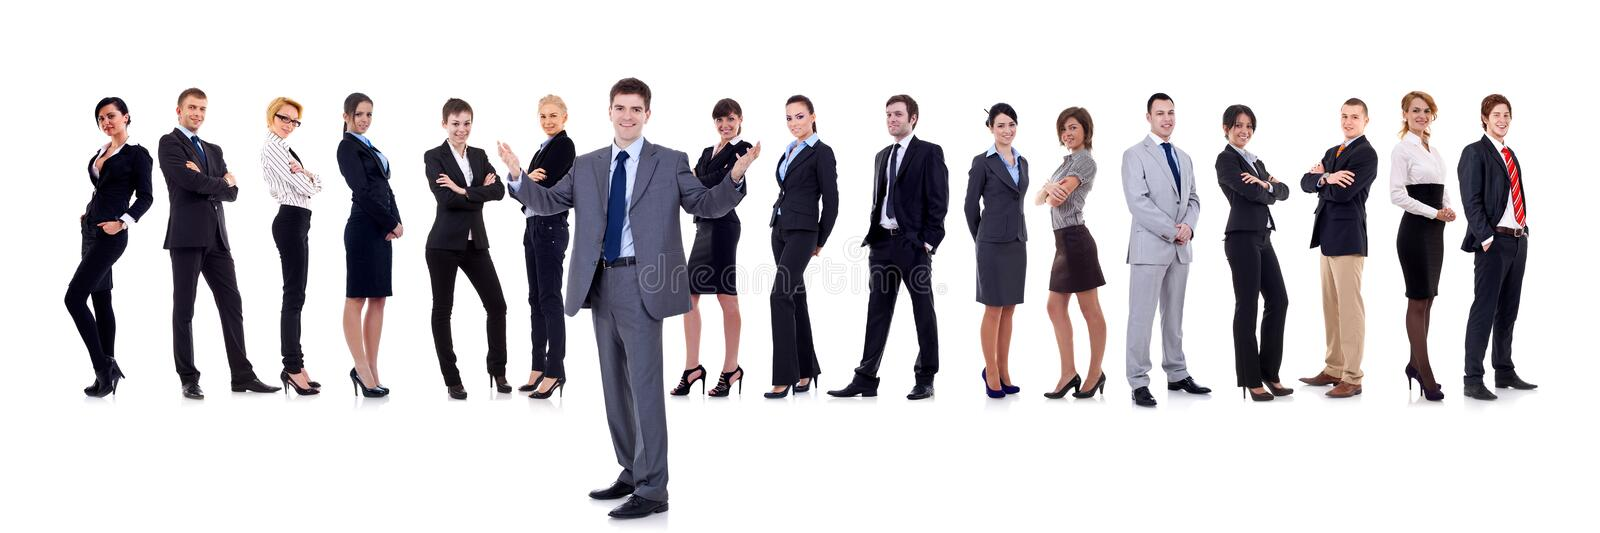 Download Business Team And Their Leader Stock Image - Image: 19987975